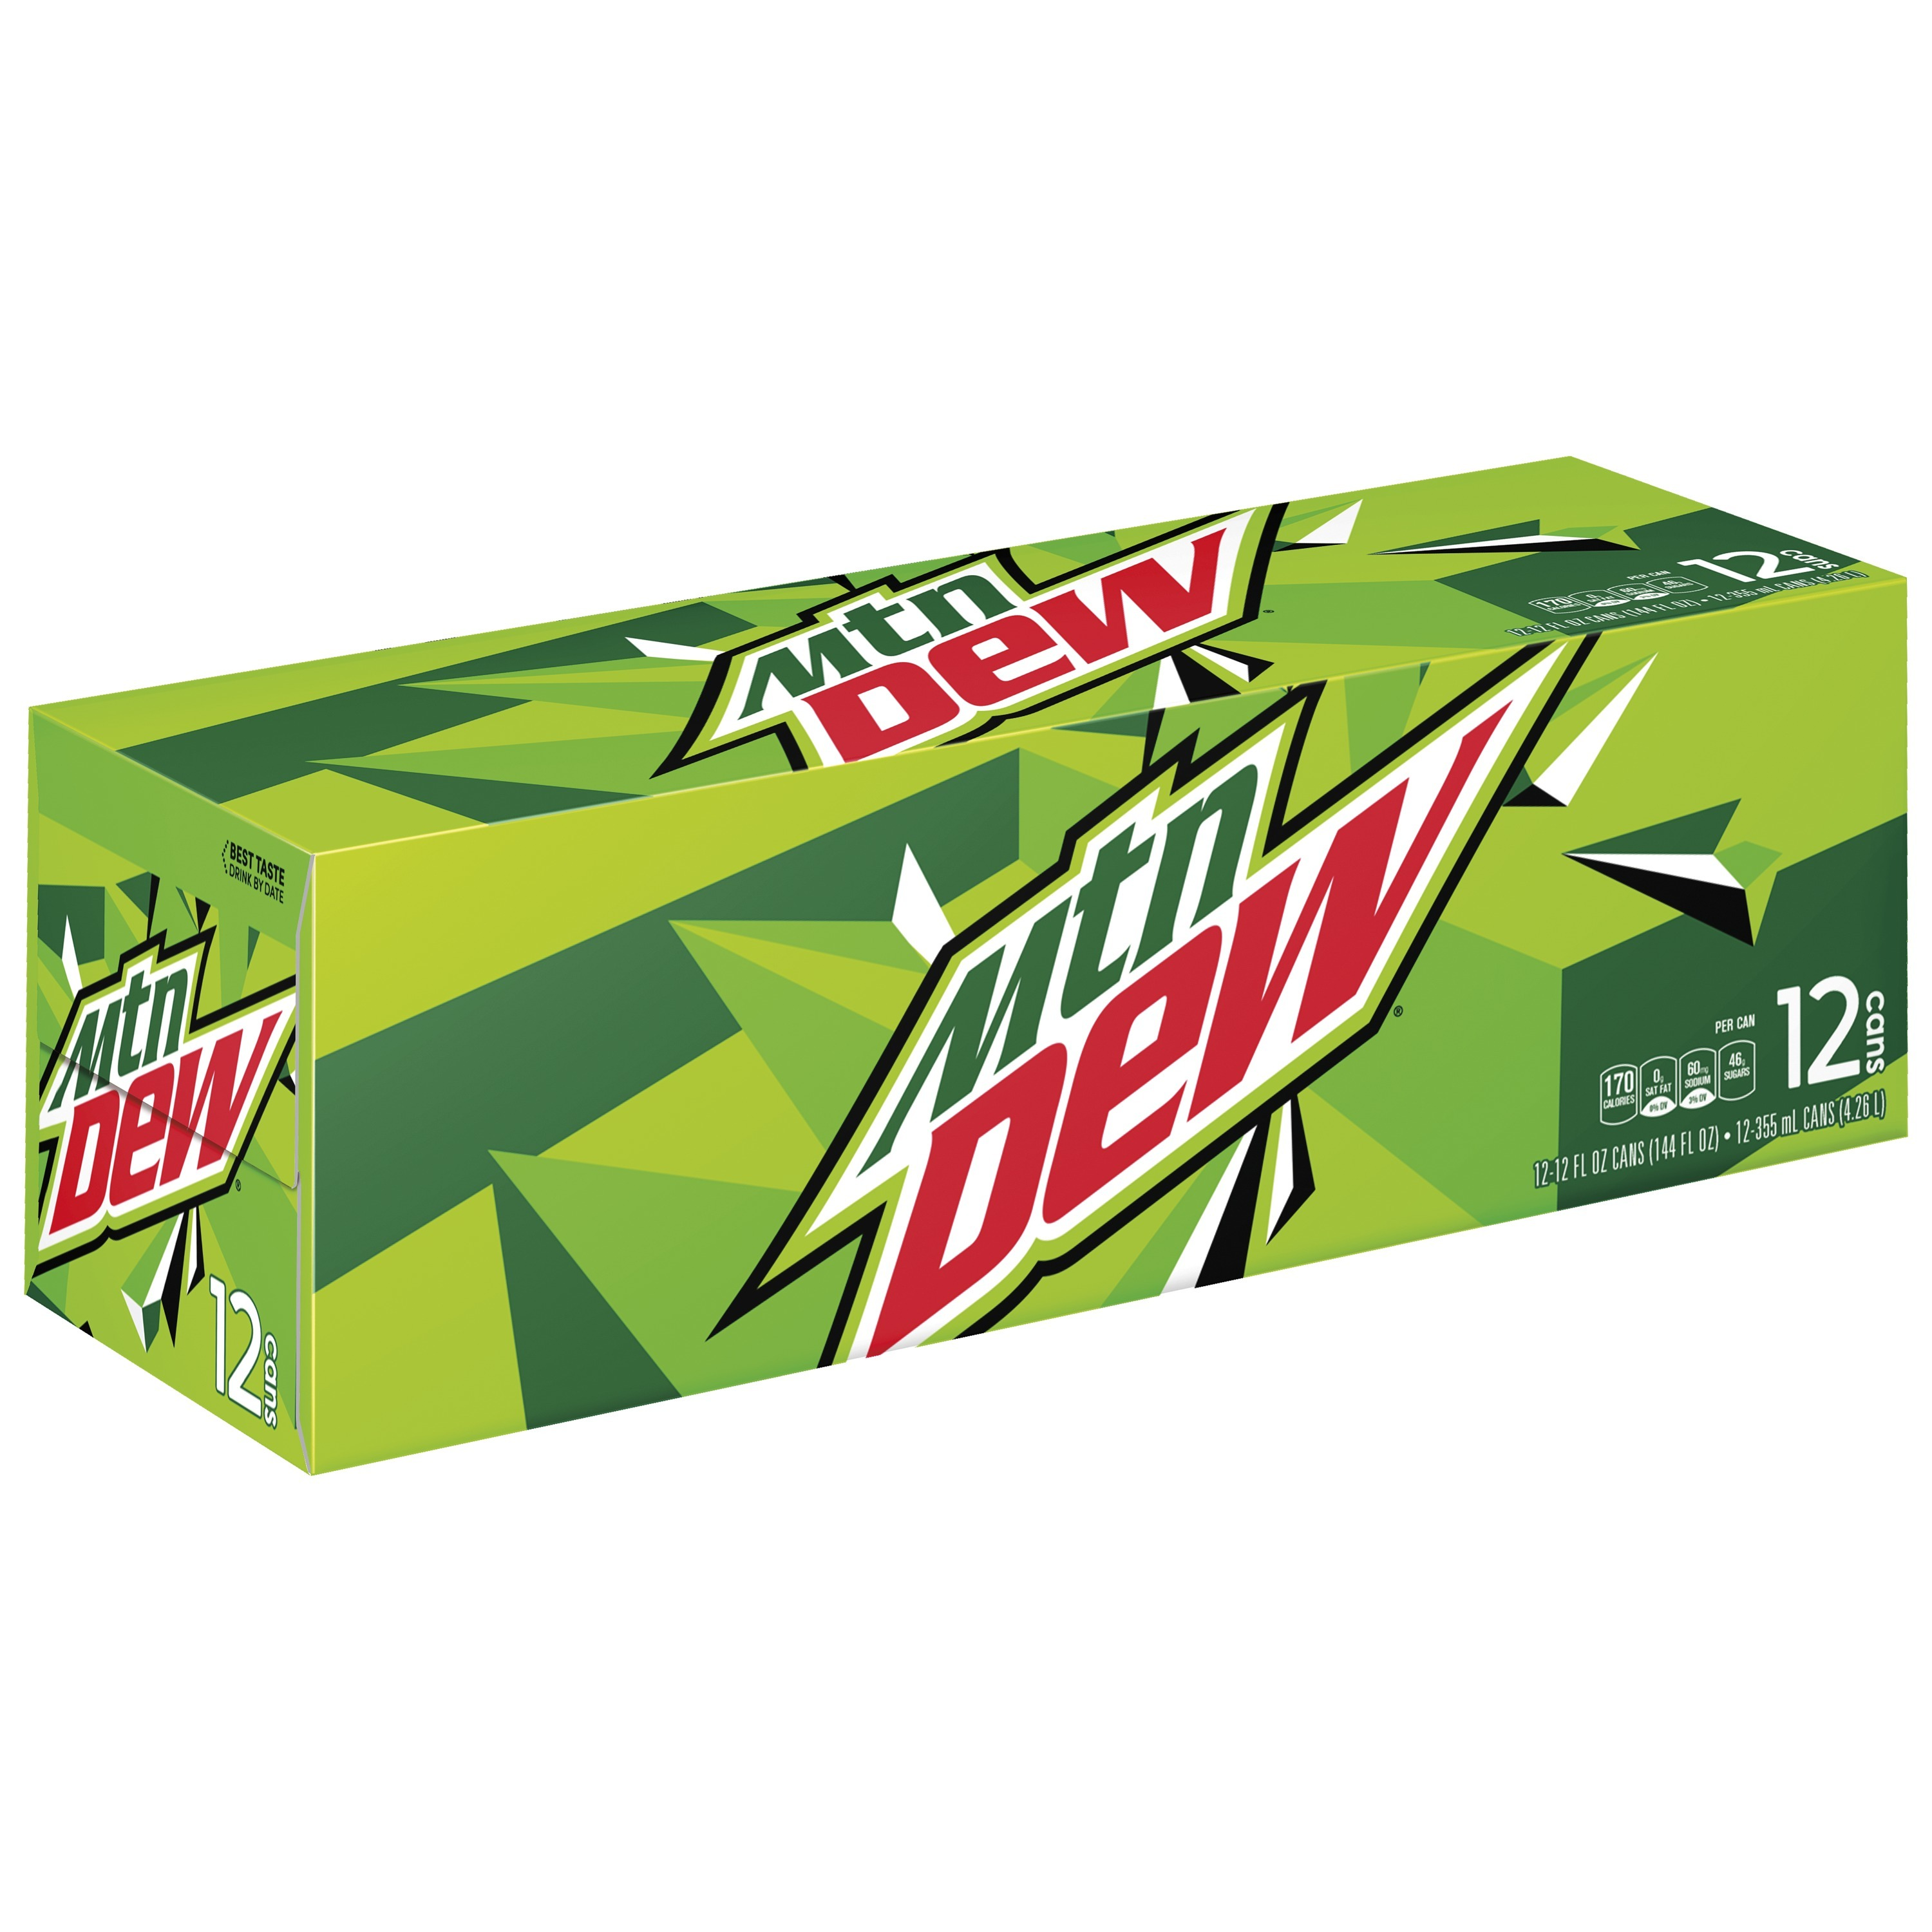 Mountain Dew Original Soda, 12 Fl Oz, 12 Count